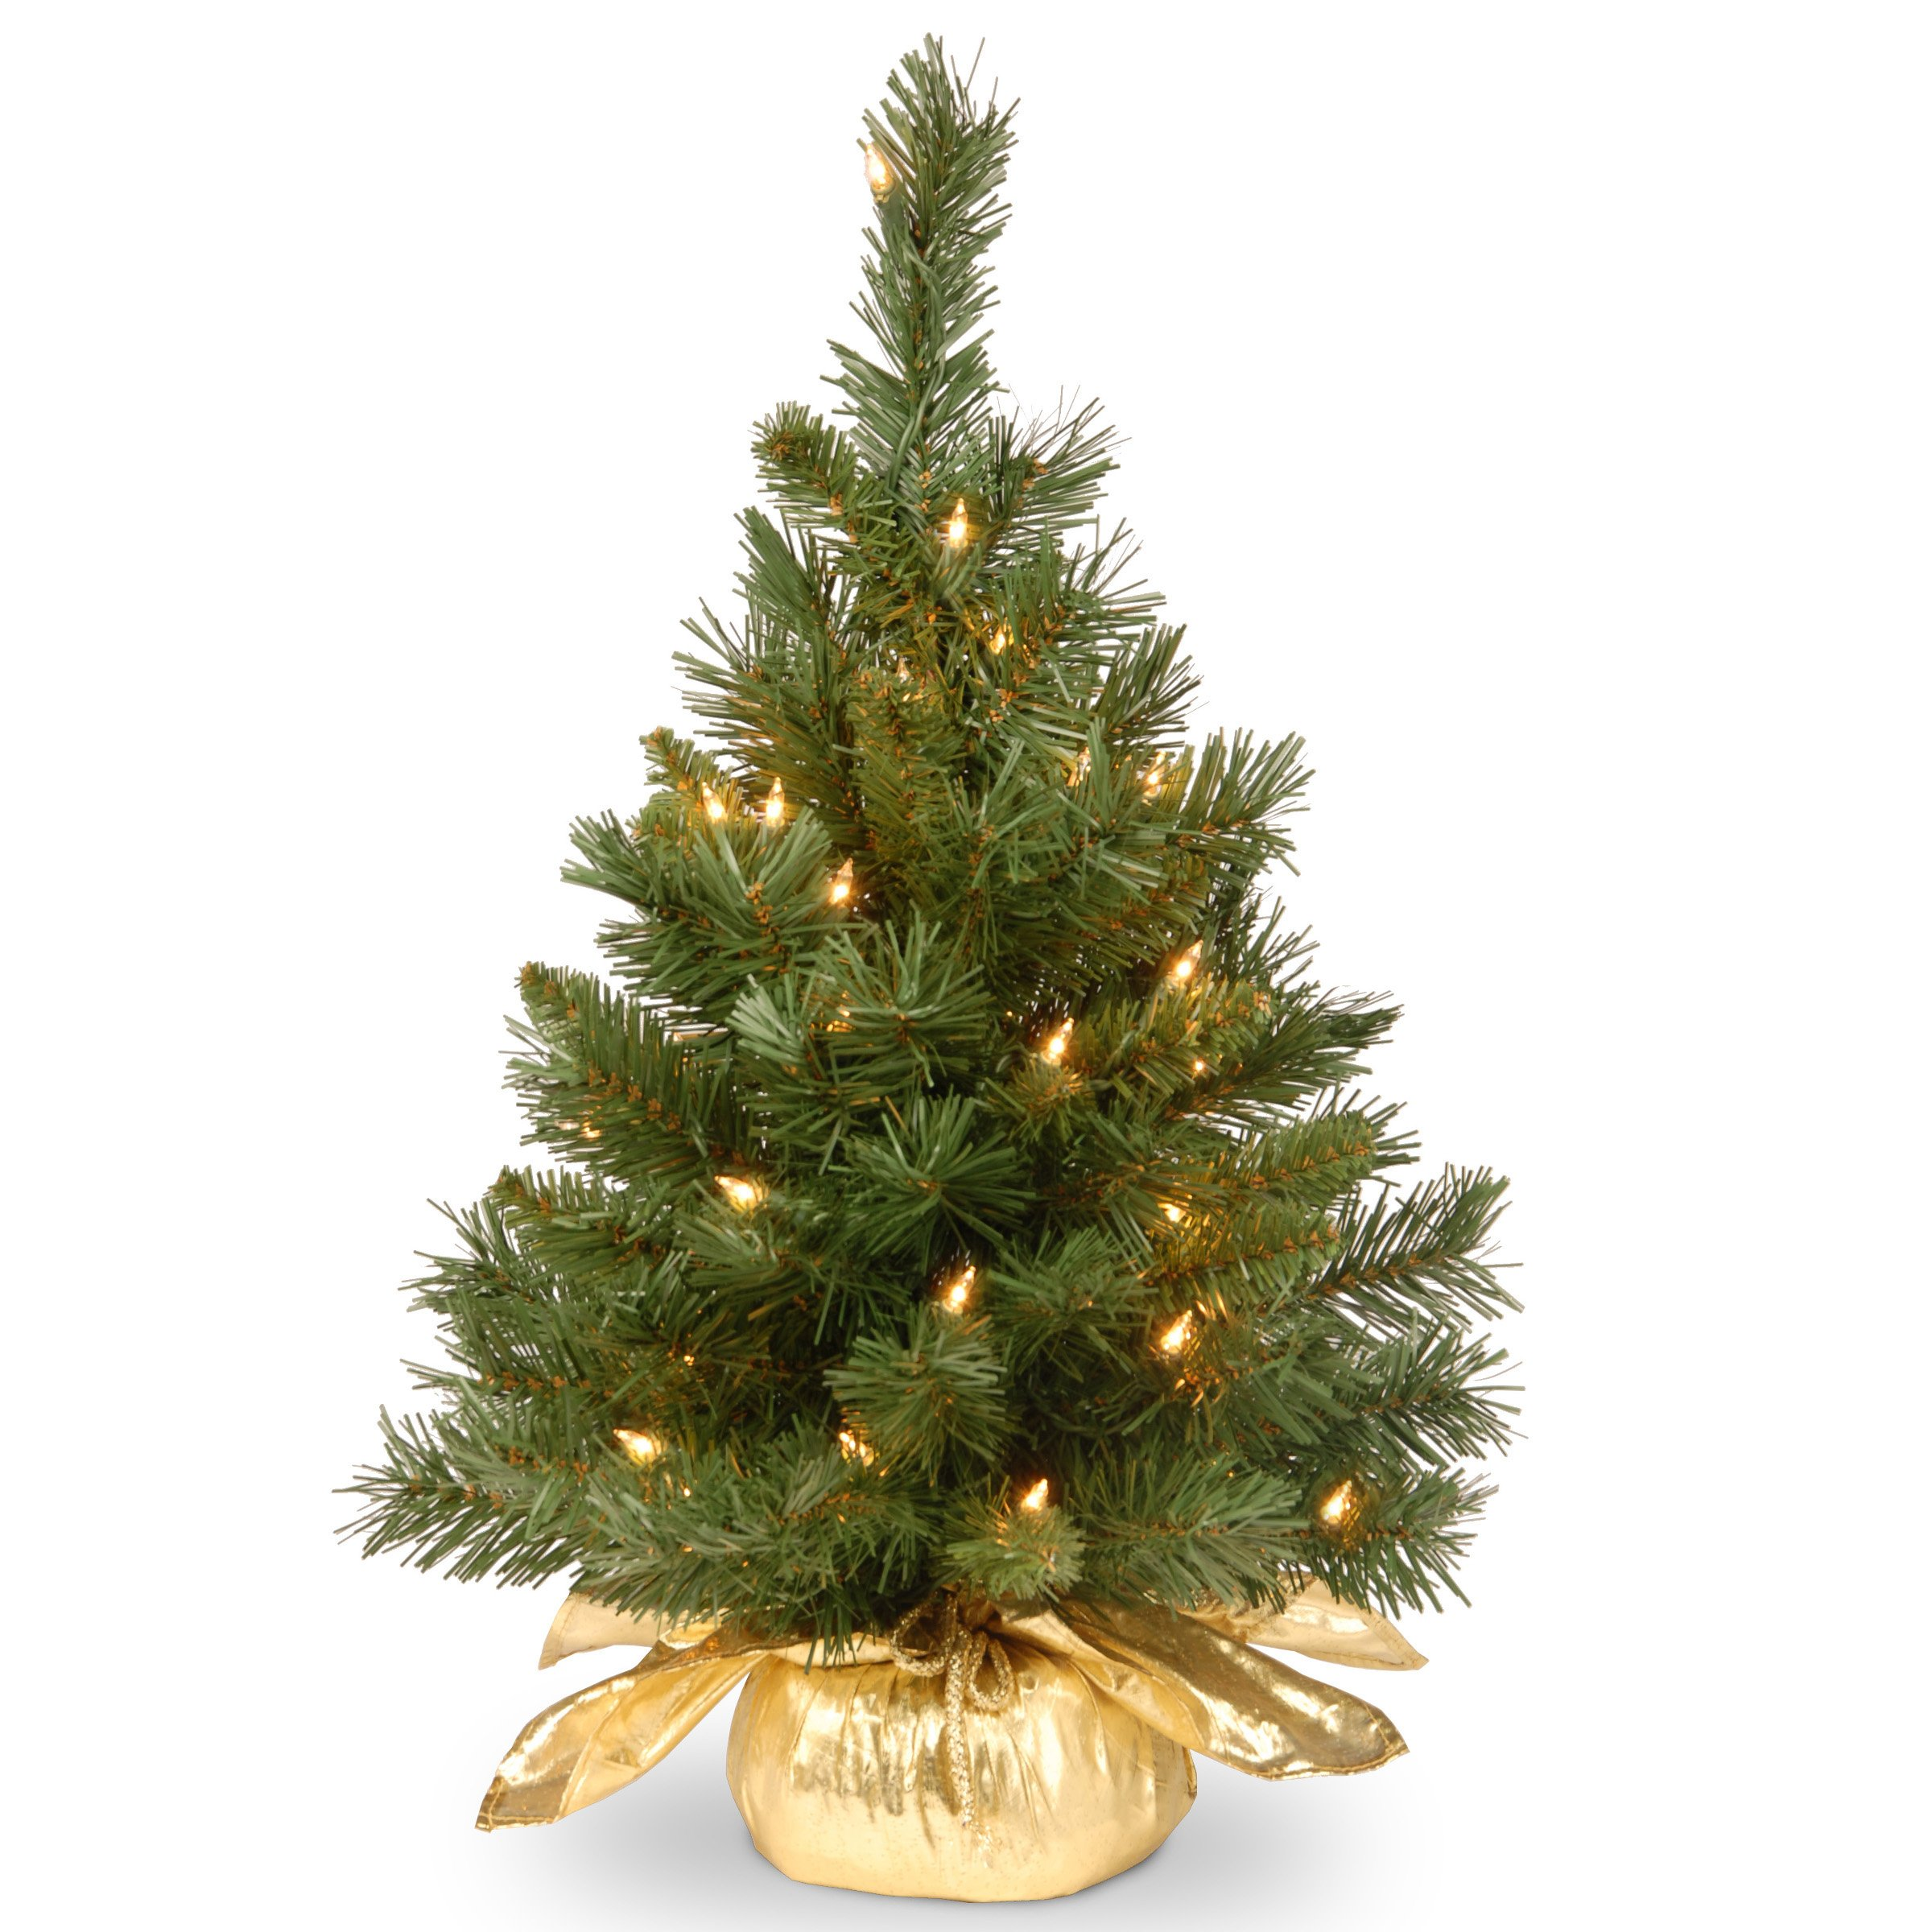 National Tree 24 Inch Majestic Fir Tree with 35 Clear Lights in Gold Cloth Bag (MJ3-24GDLO-1) by National Tree Company